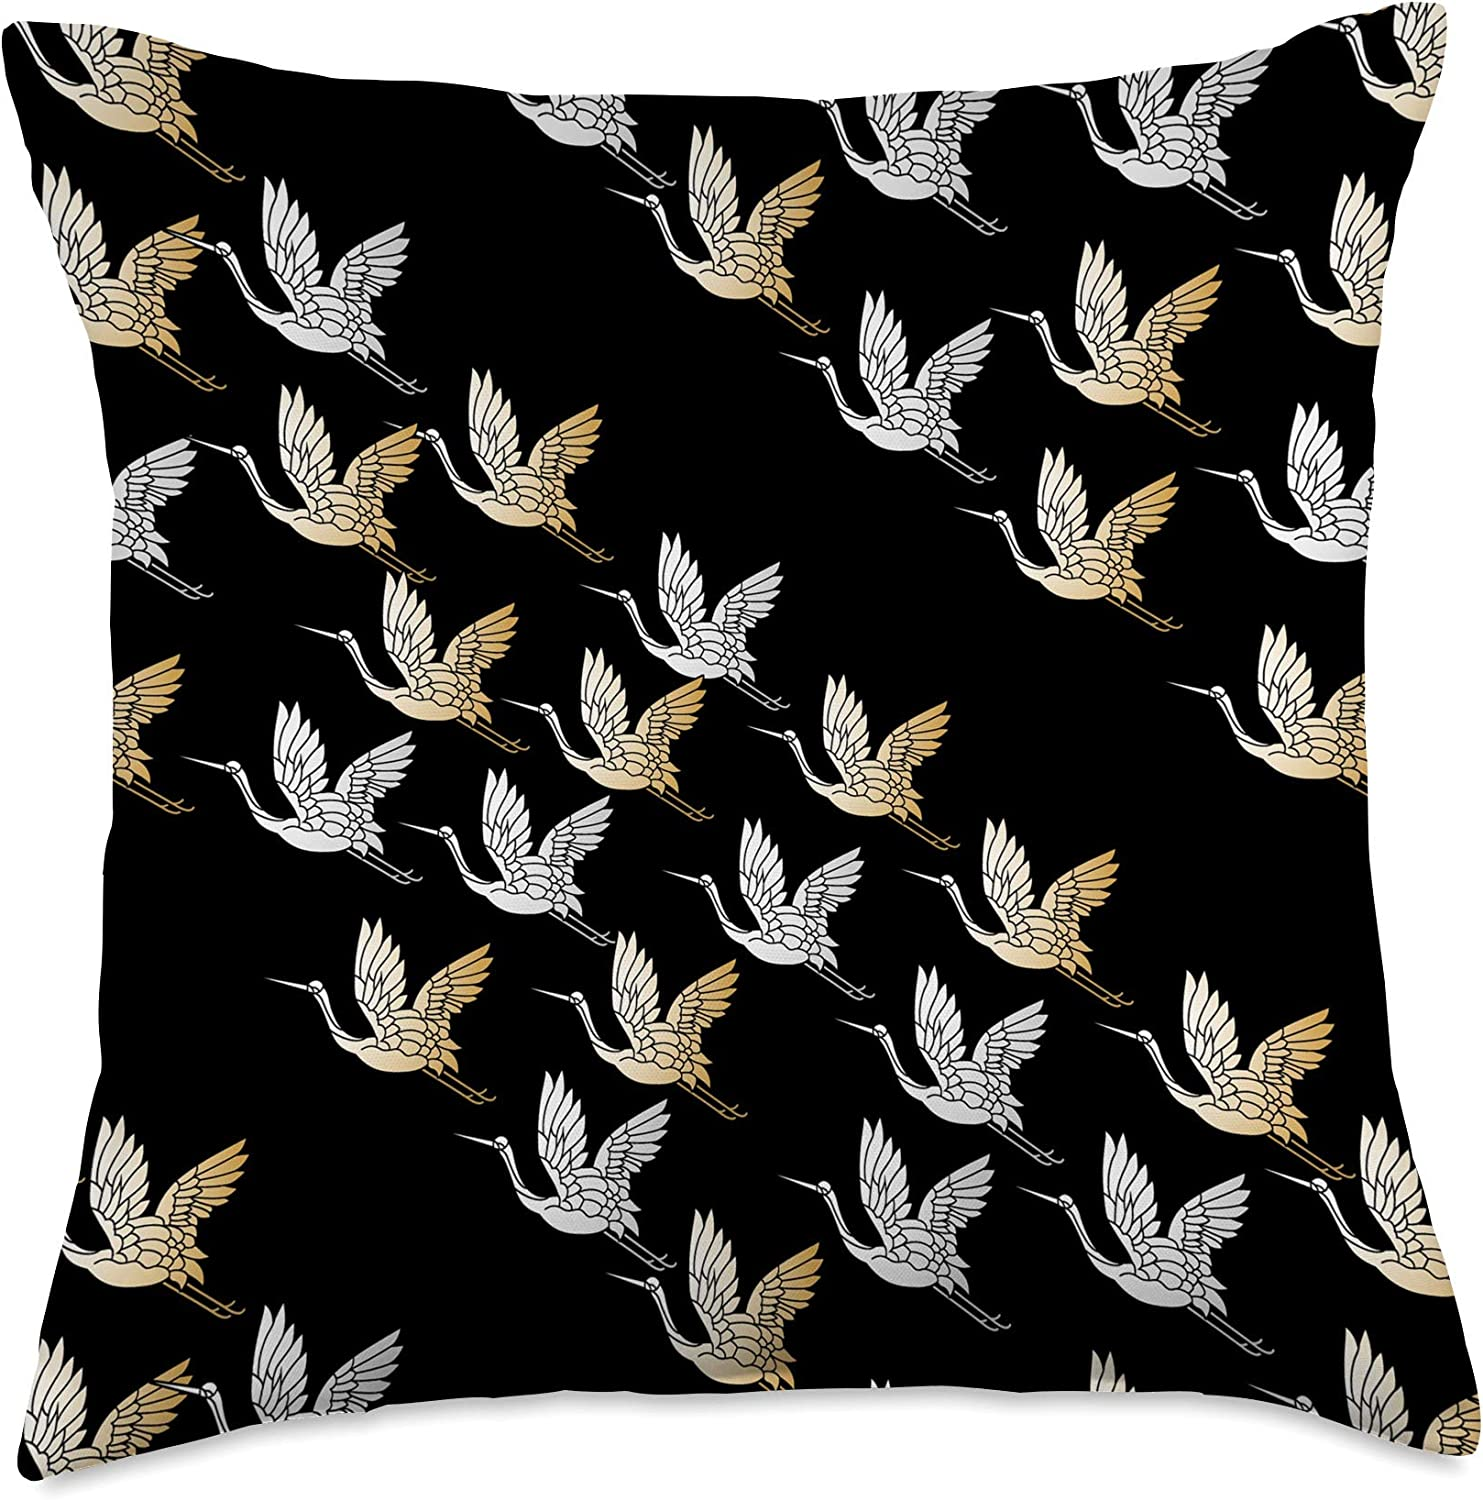 Decoratives Living Room & Couches Co. Storks Home Decorative Modern Birds Design Bedroom Couch Throw Pillow, 18x18, Multicolor